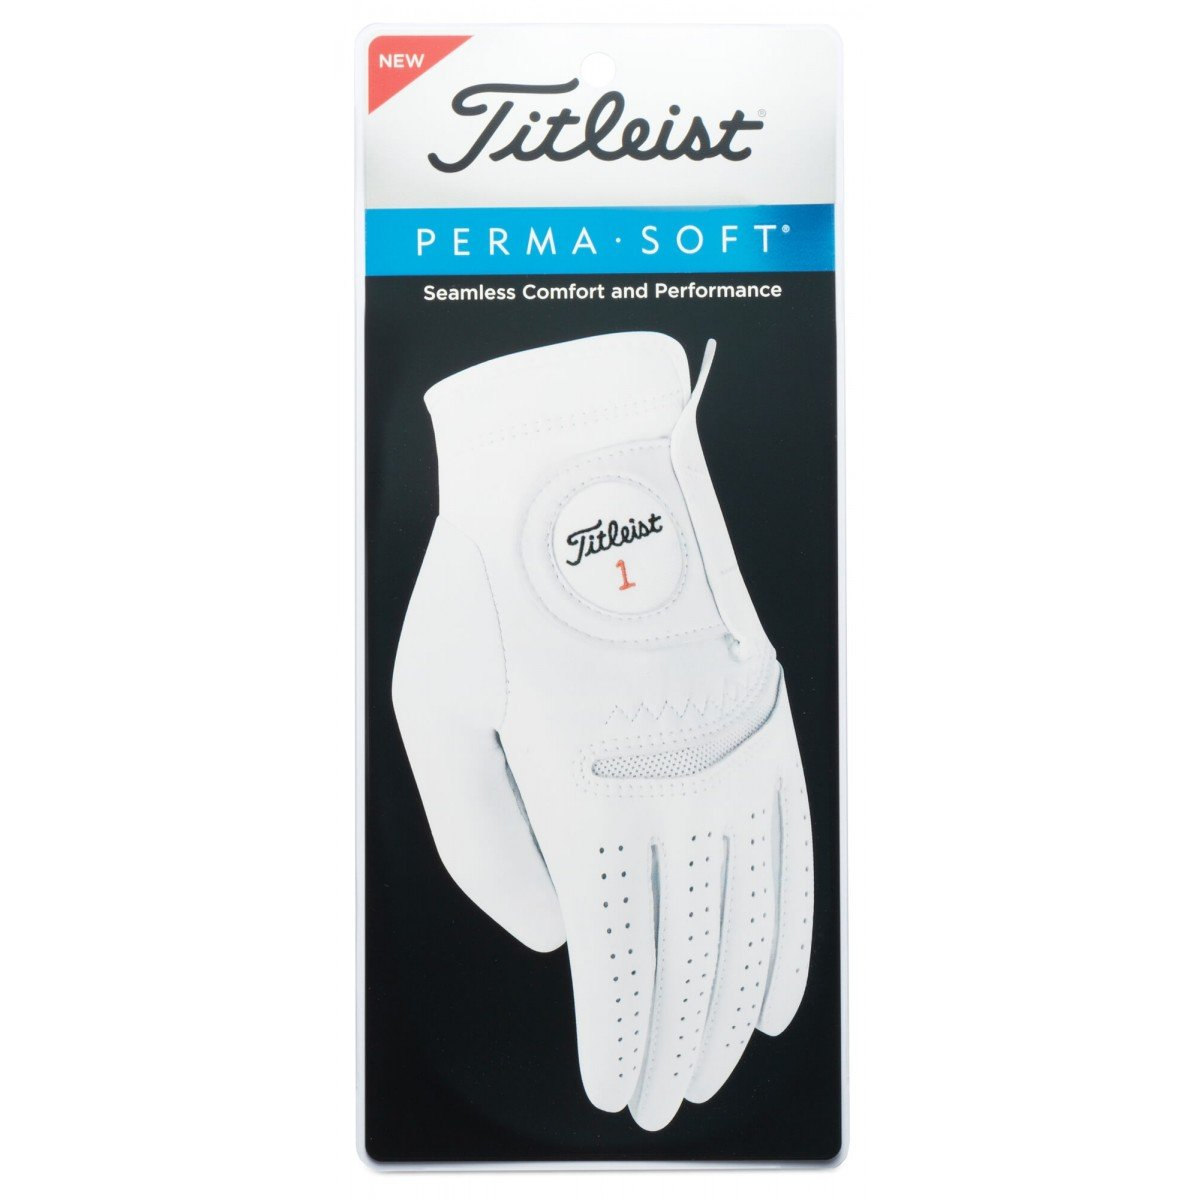 Titleist 2020 Perma-Soft Golf Glove - Left Hand Cadet